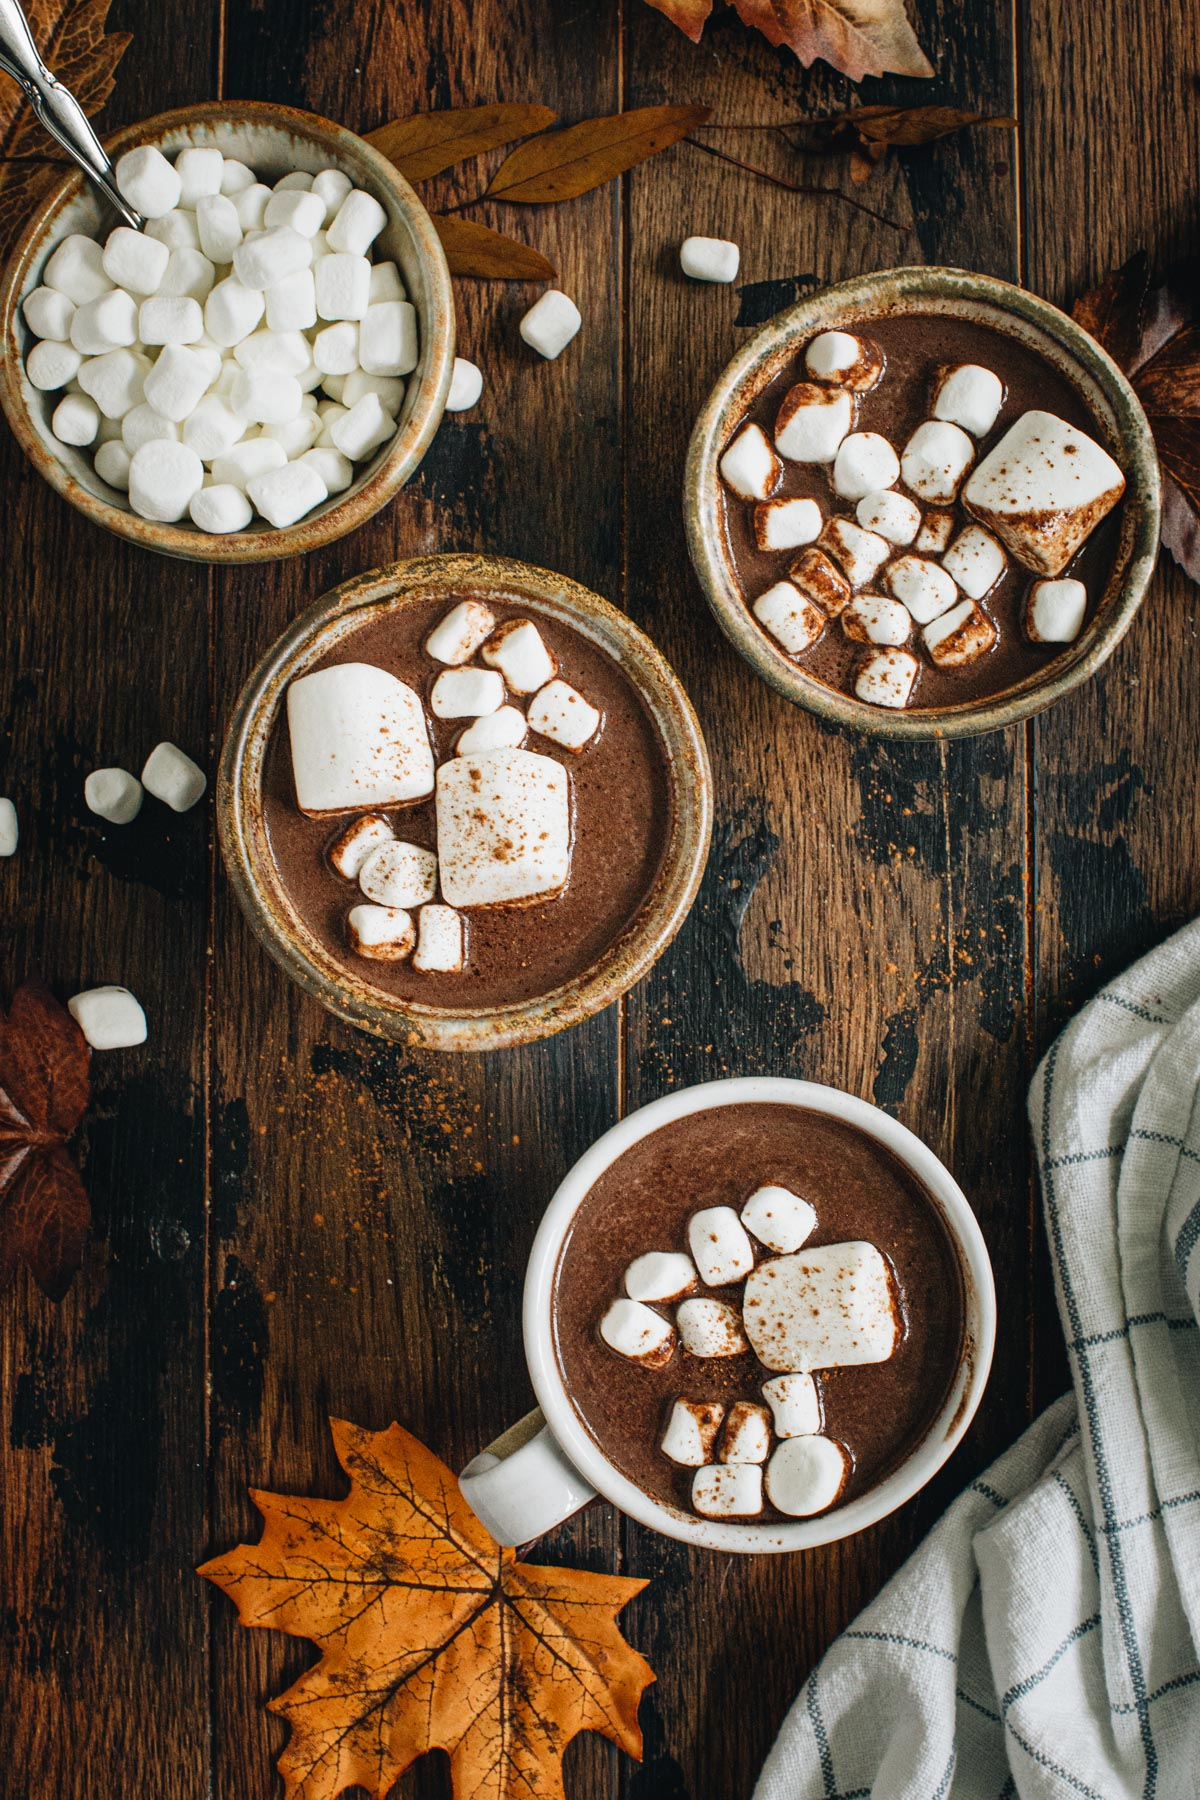 Pumpkin hot chocolate in mugs topped with marshmallows.